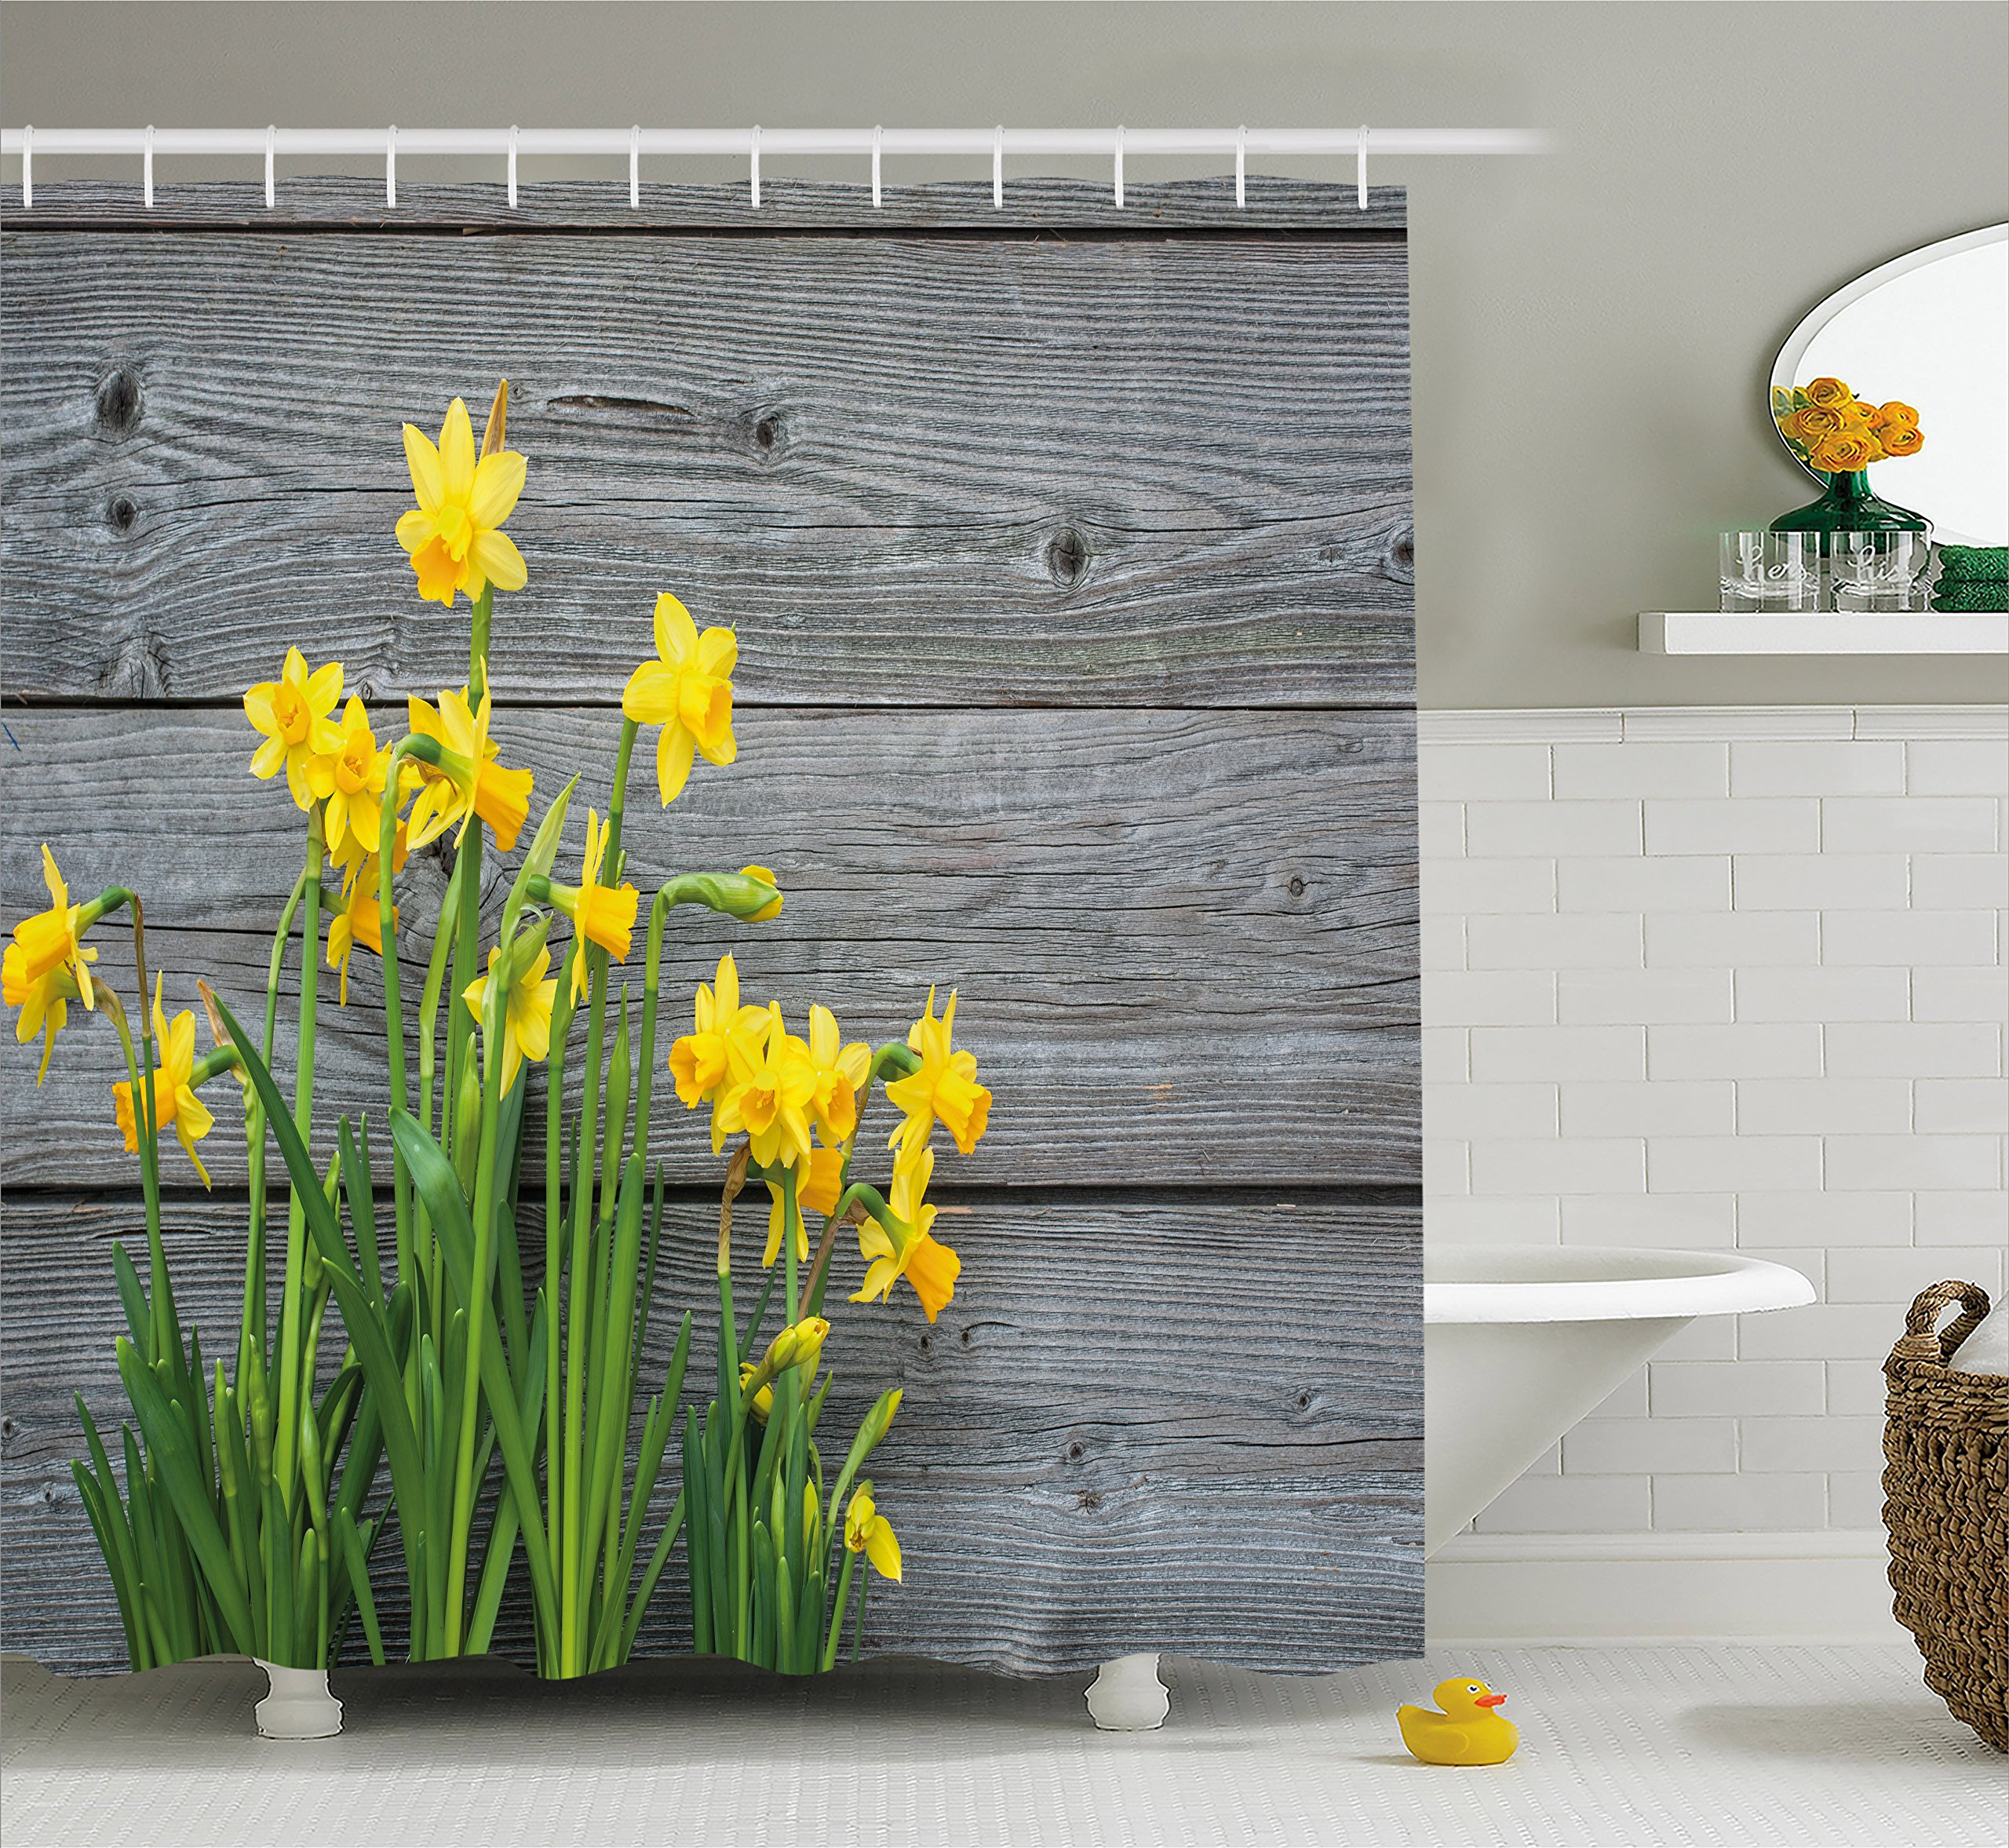 Ambesonne Yellow Flower Shower Curtain, Bouquet Daffodils on Wood Planks Gardening Rustic Country Life Theme, Fabric Bathroom Decor Set Hooks, 70 inches, Yellow Grey